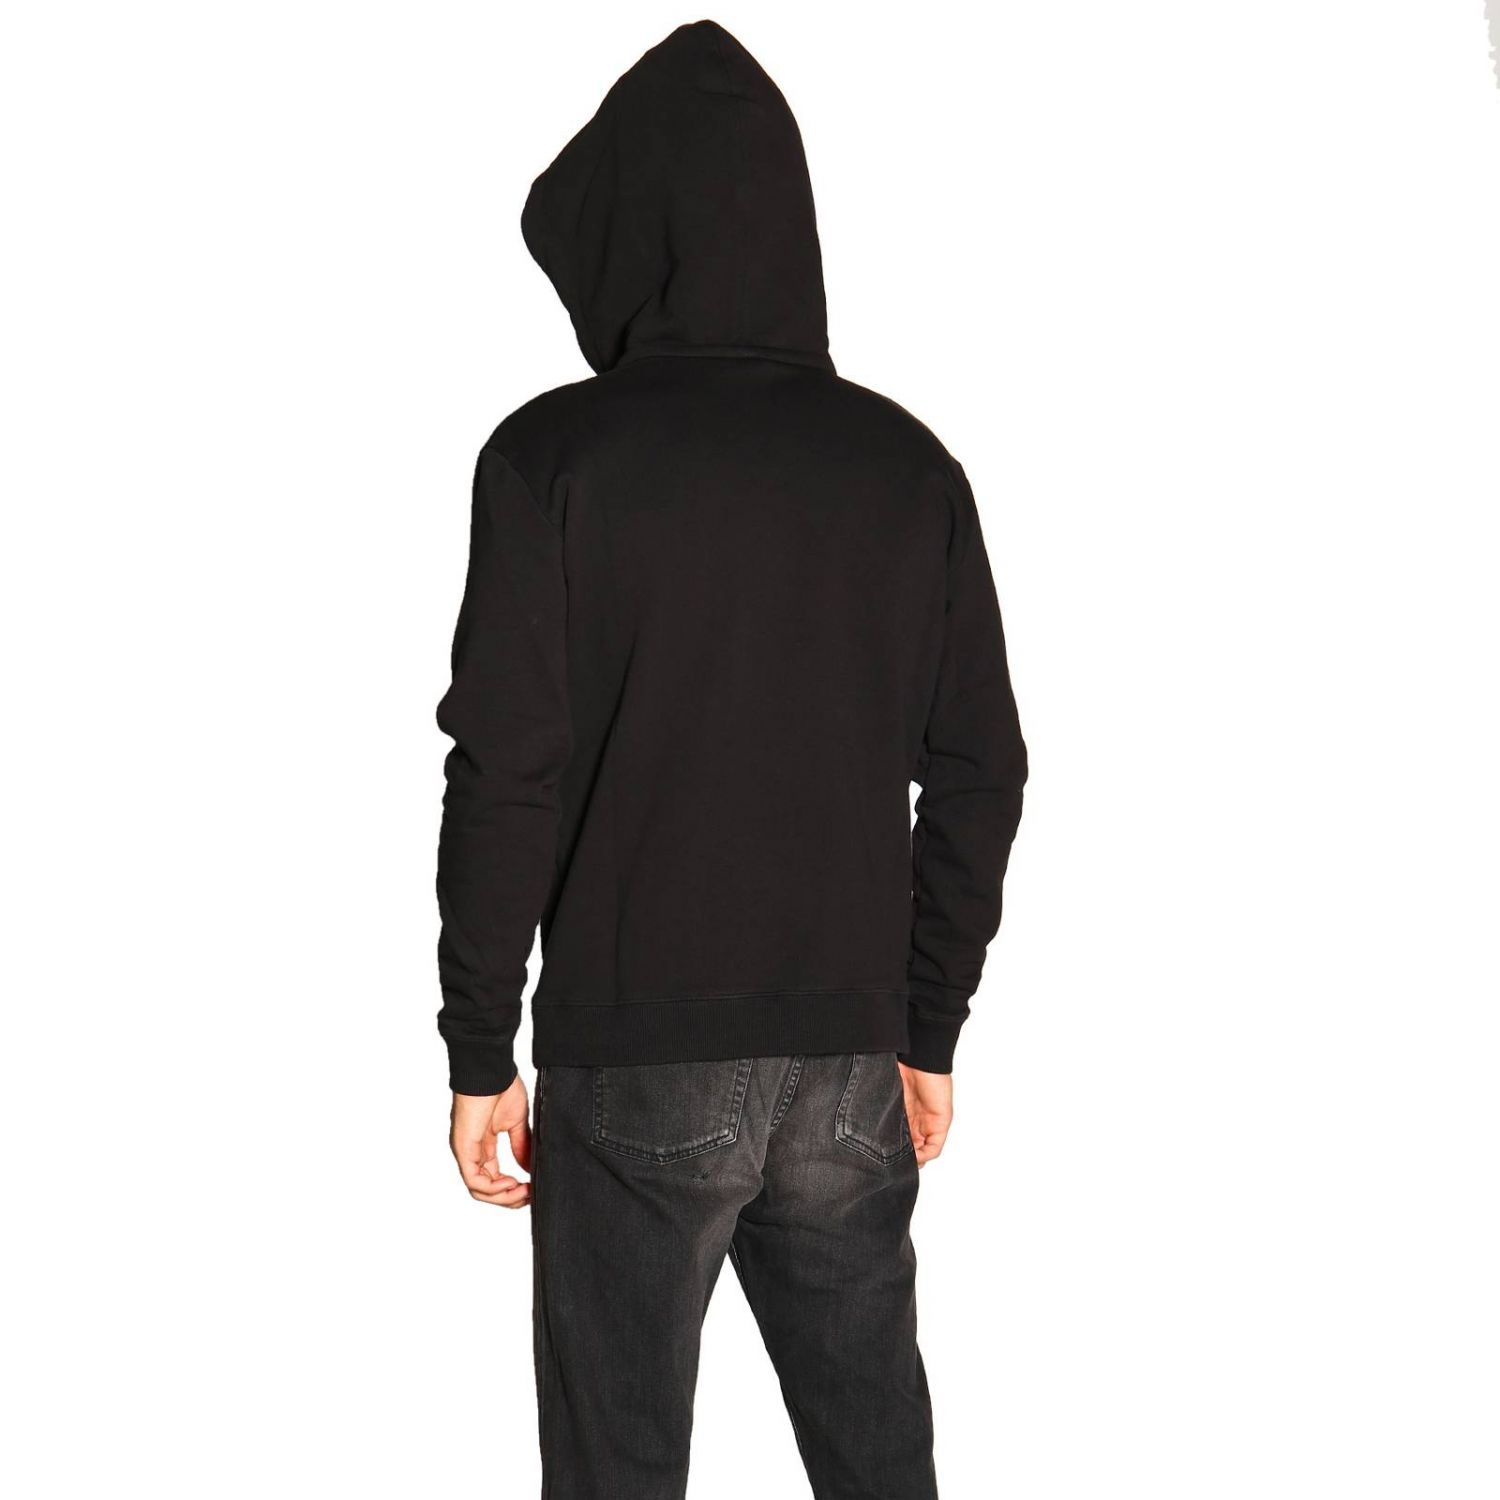 Sweater men Saint Laurent black 3